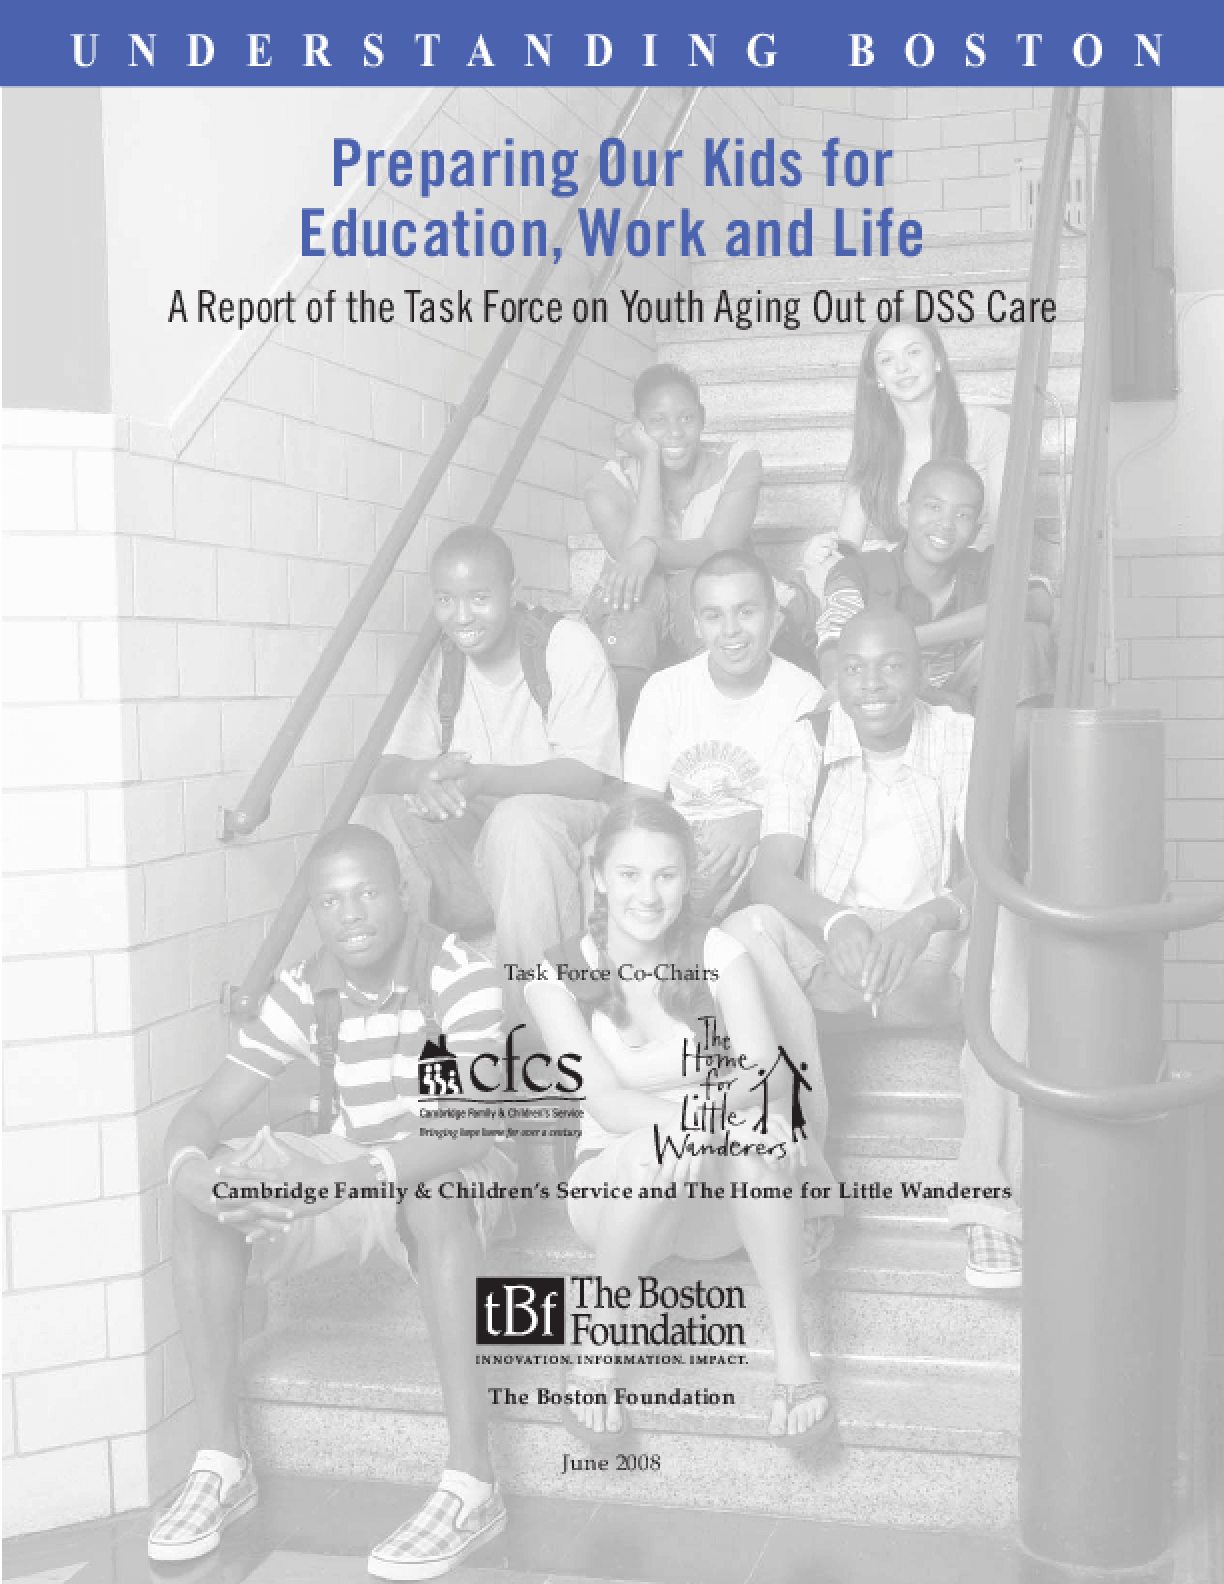 Preparing Our Kids for Education, Work and Life: A Report of the Task Force on Youth Aging Out